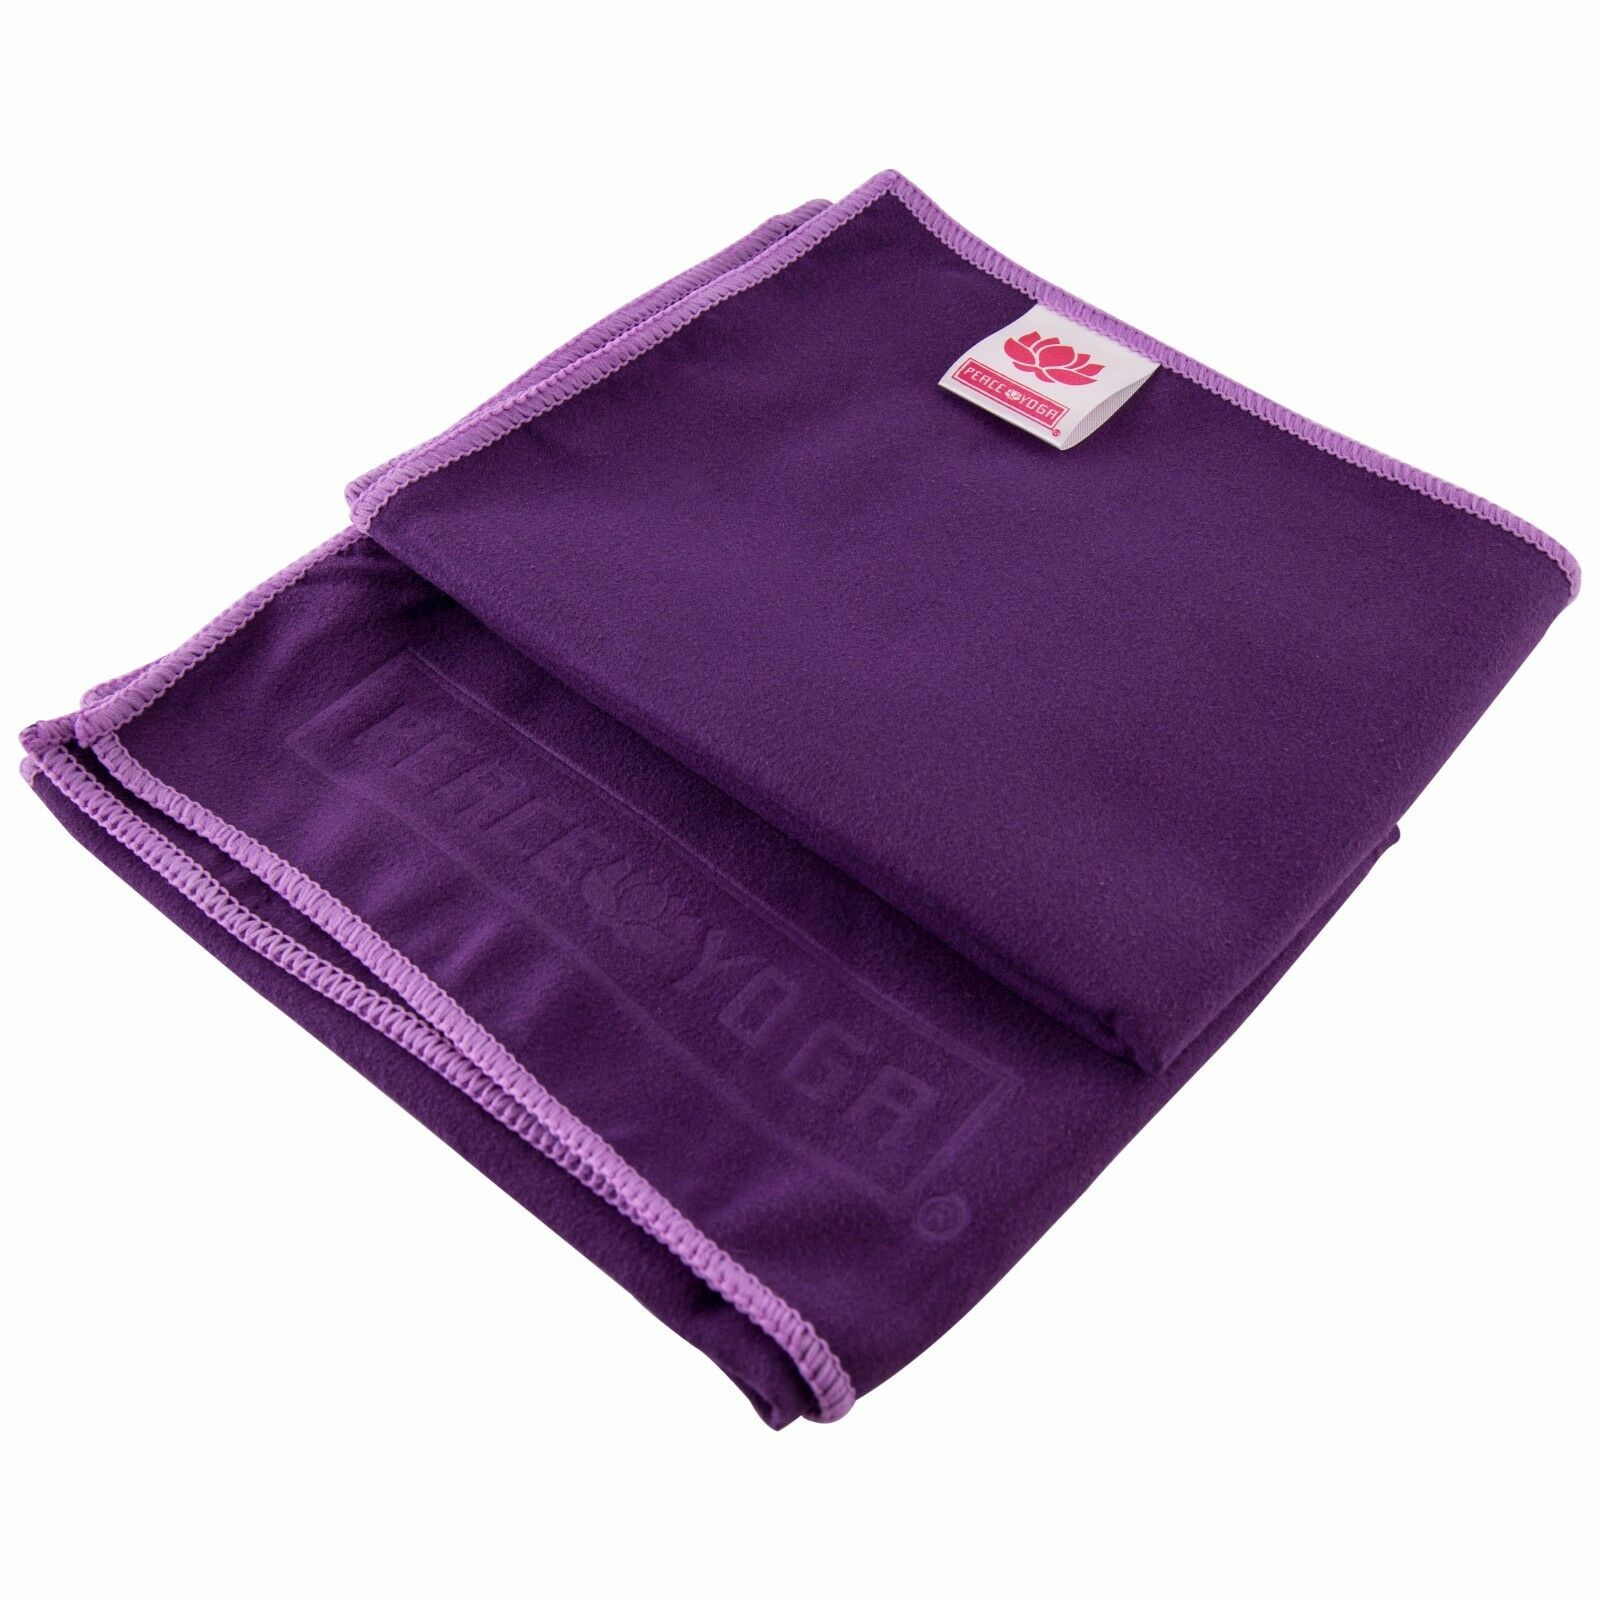 Yoga Exercise Towel - Get Out Your Zone